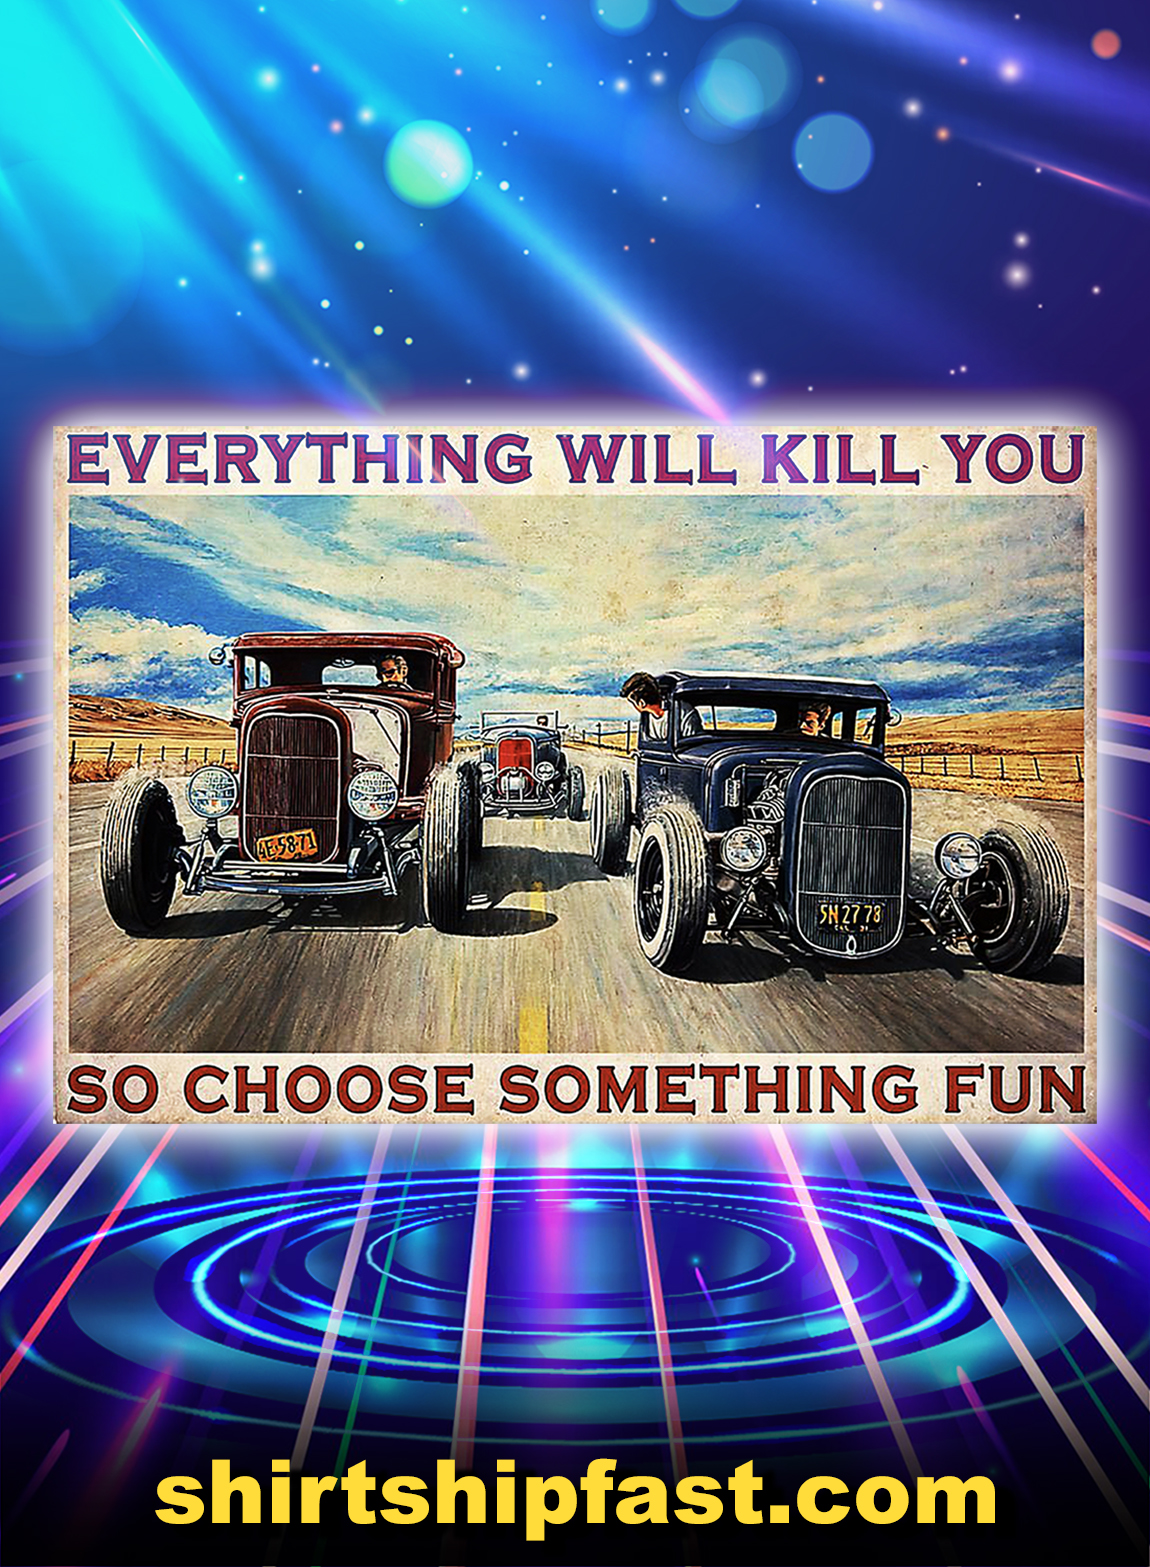 Everything will kill you so choose something fun hot rod poster - A2